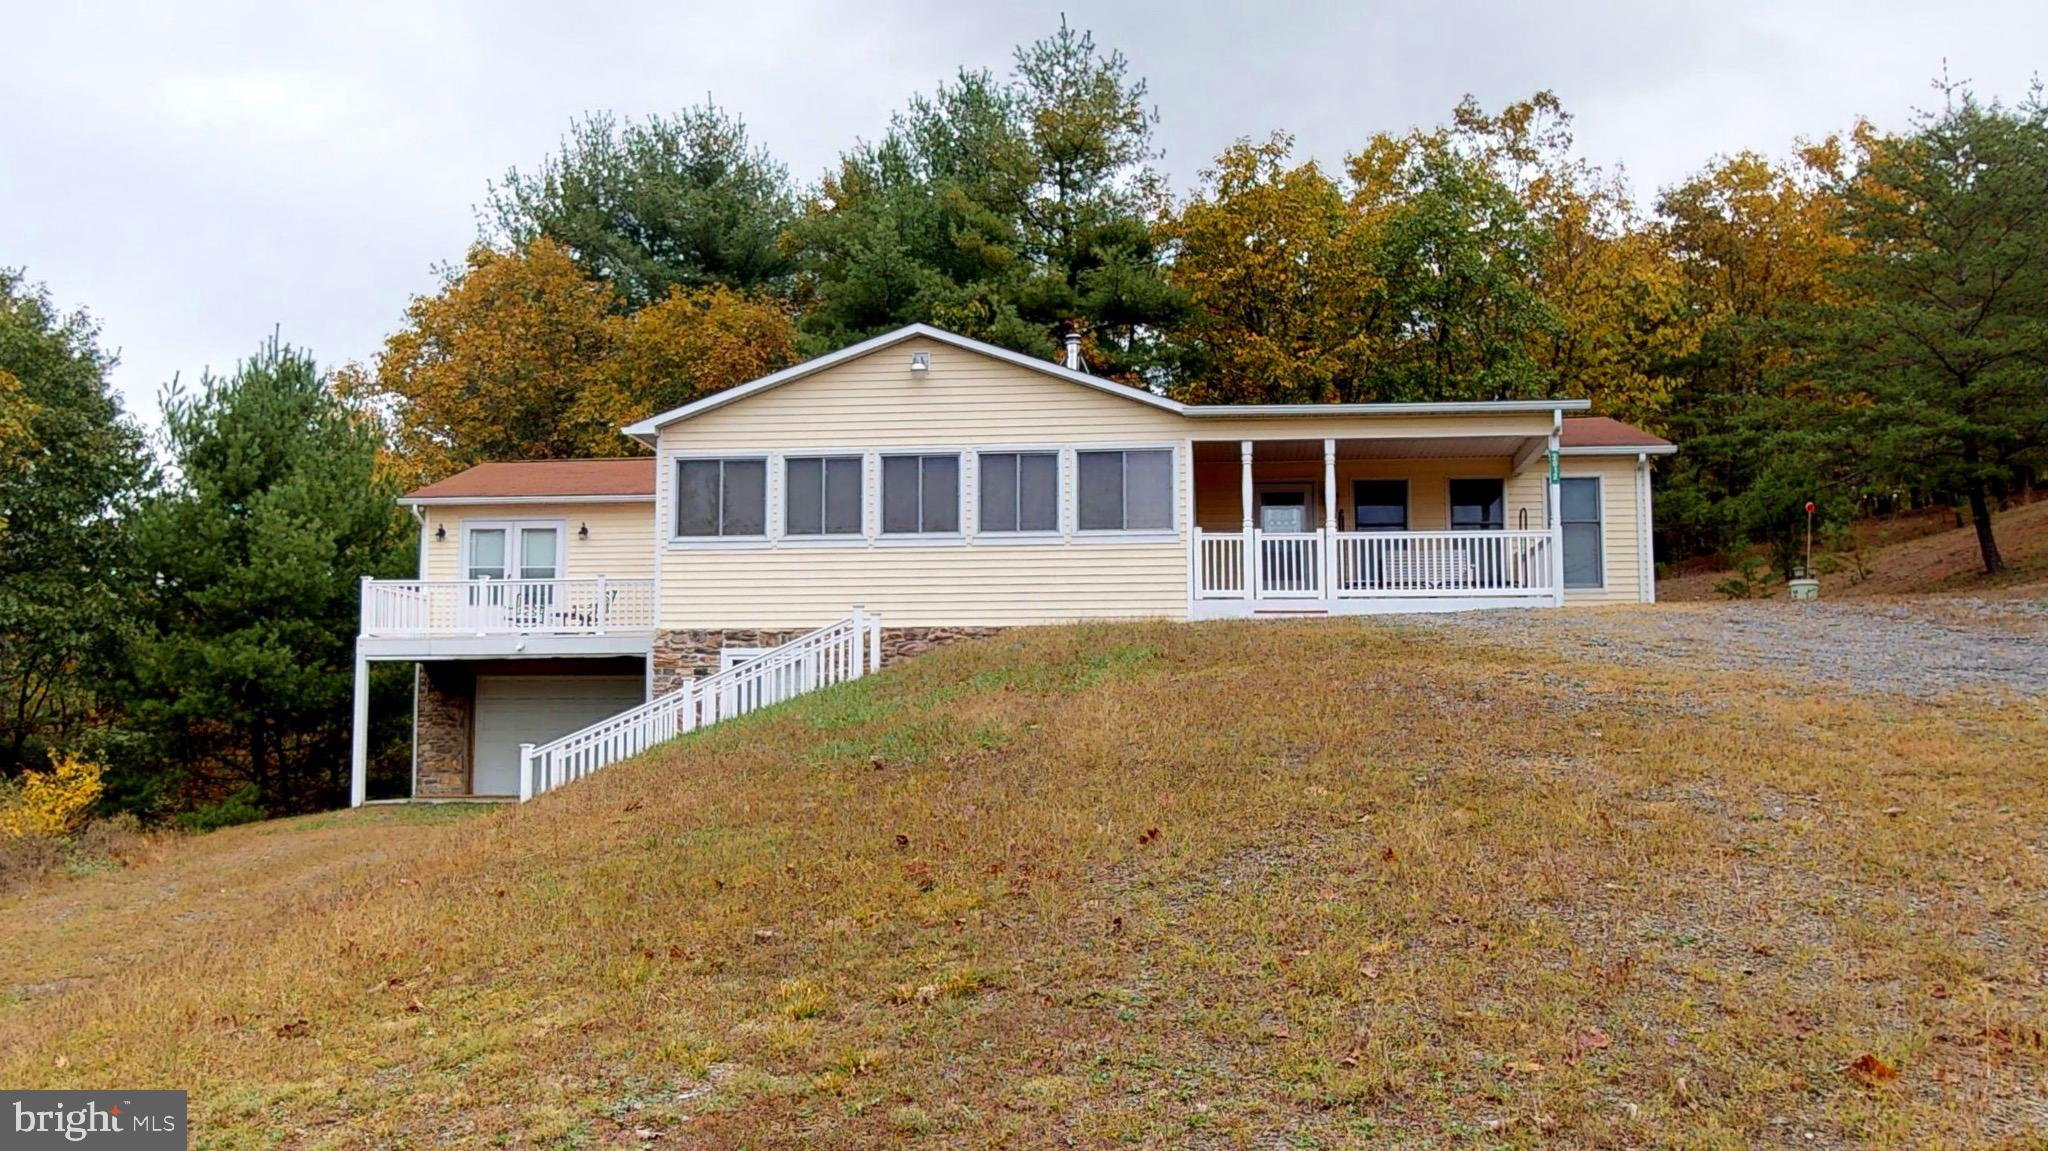 2012 Crystal Valley Drive, Romney, WV 26757